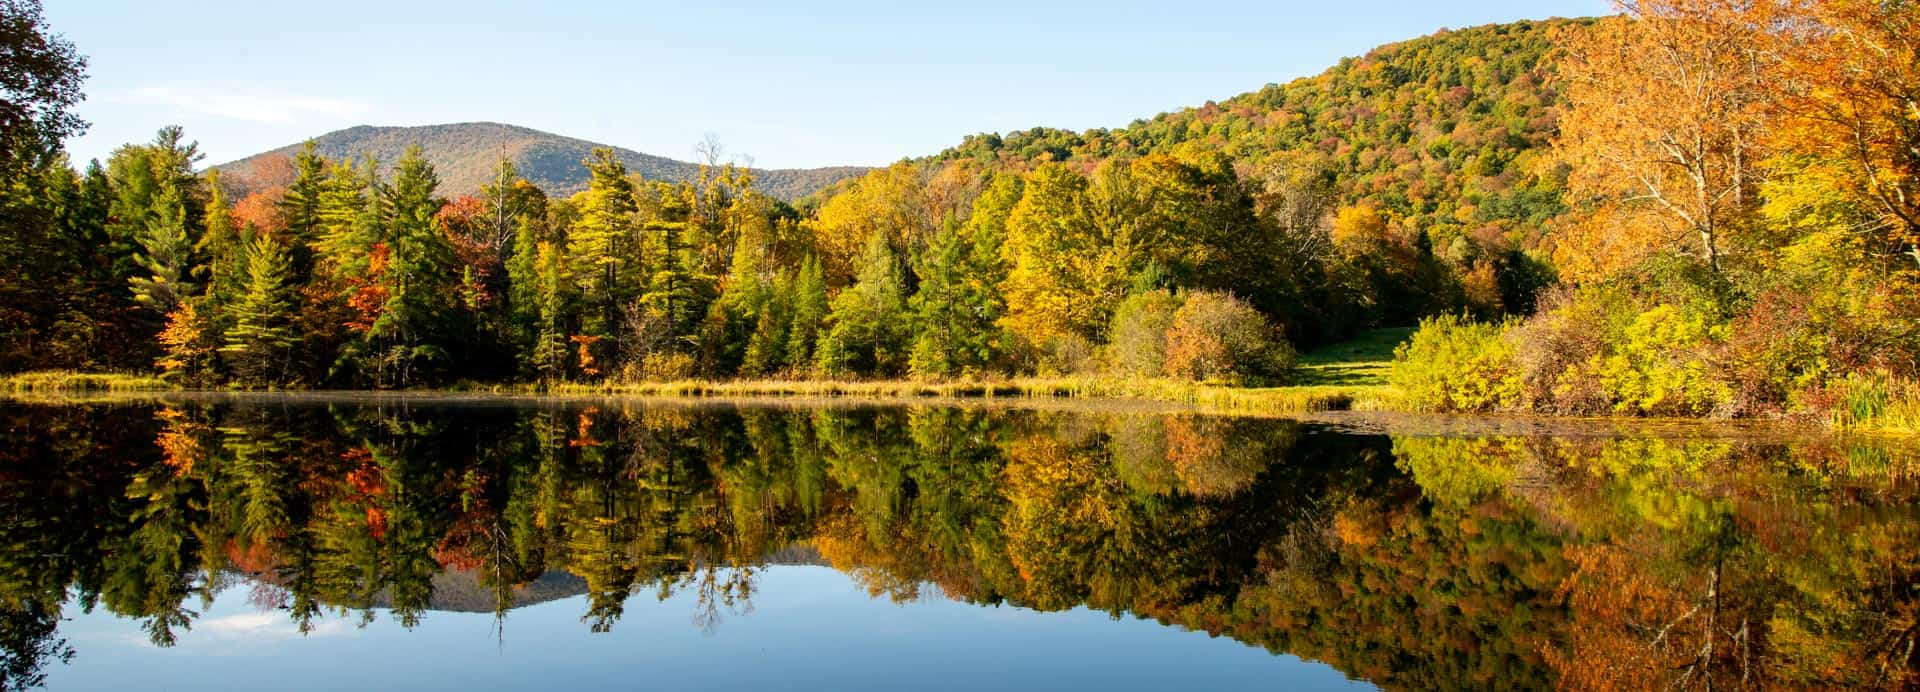 Vermont pond in fall